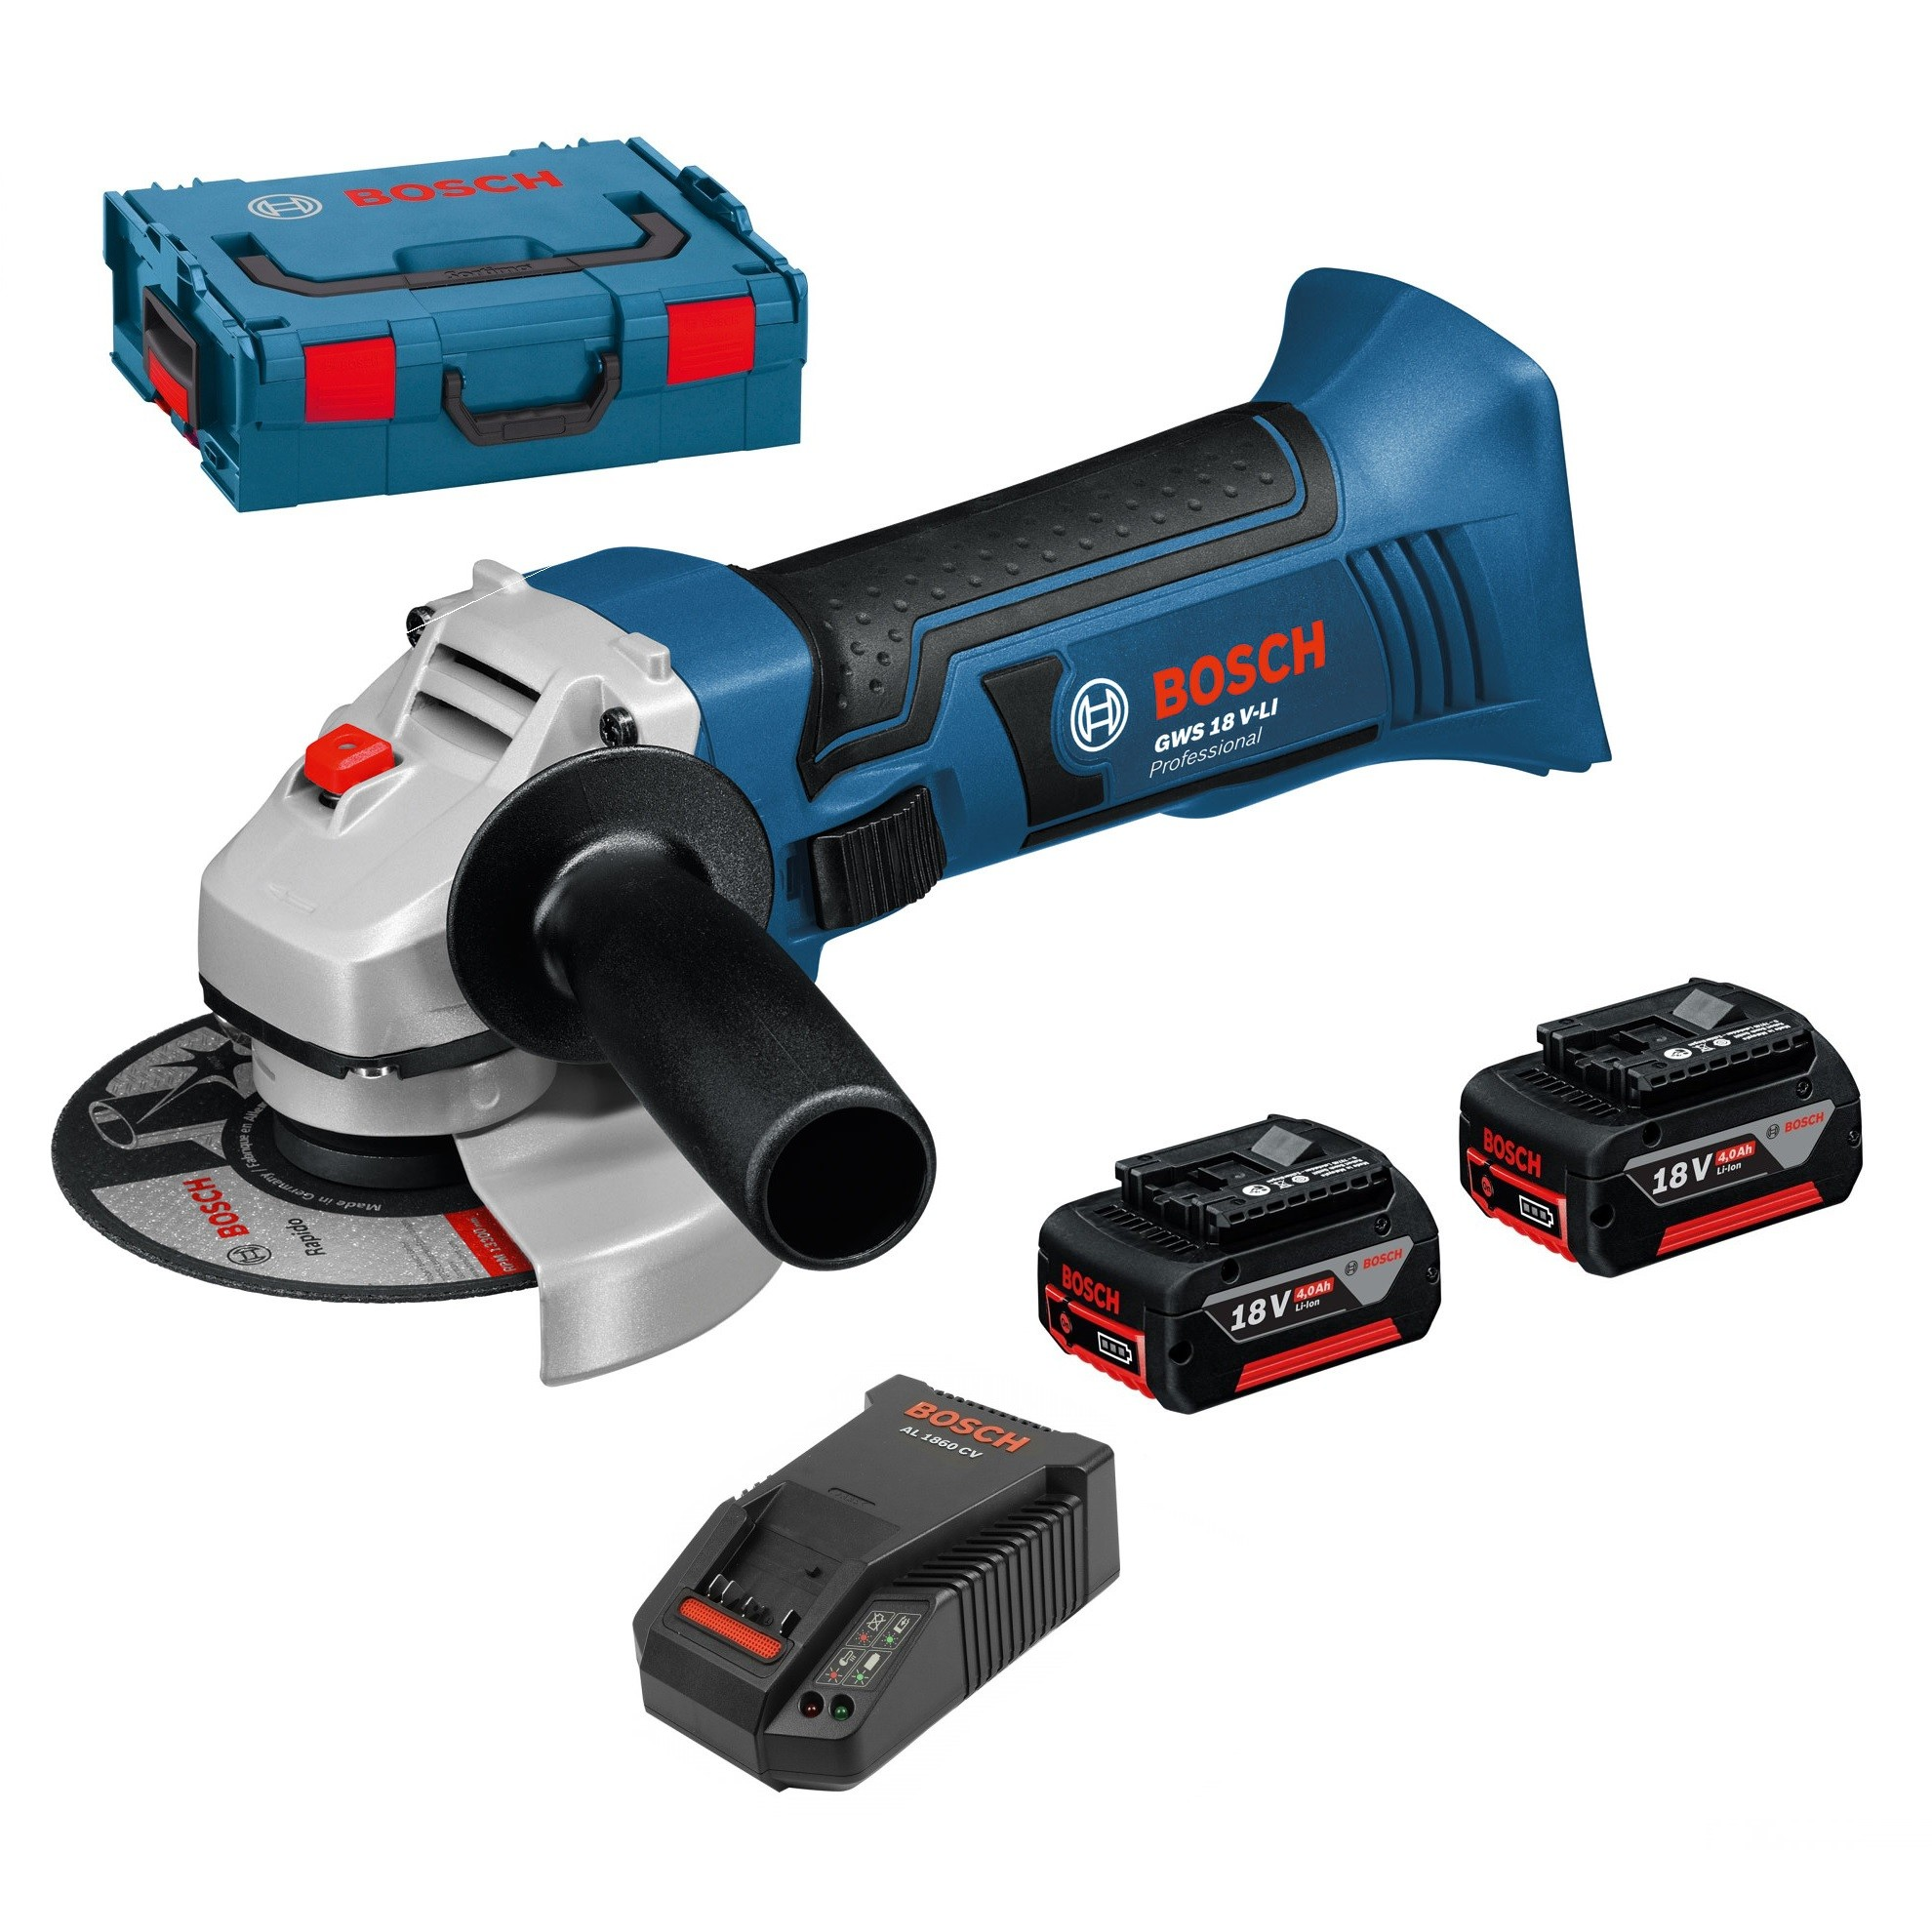 Bosch GWS 18 V-LI Angle Grinder inc 2x 4Ah Batts in L-Boxx 115mm / 4.5""